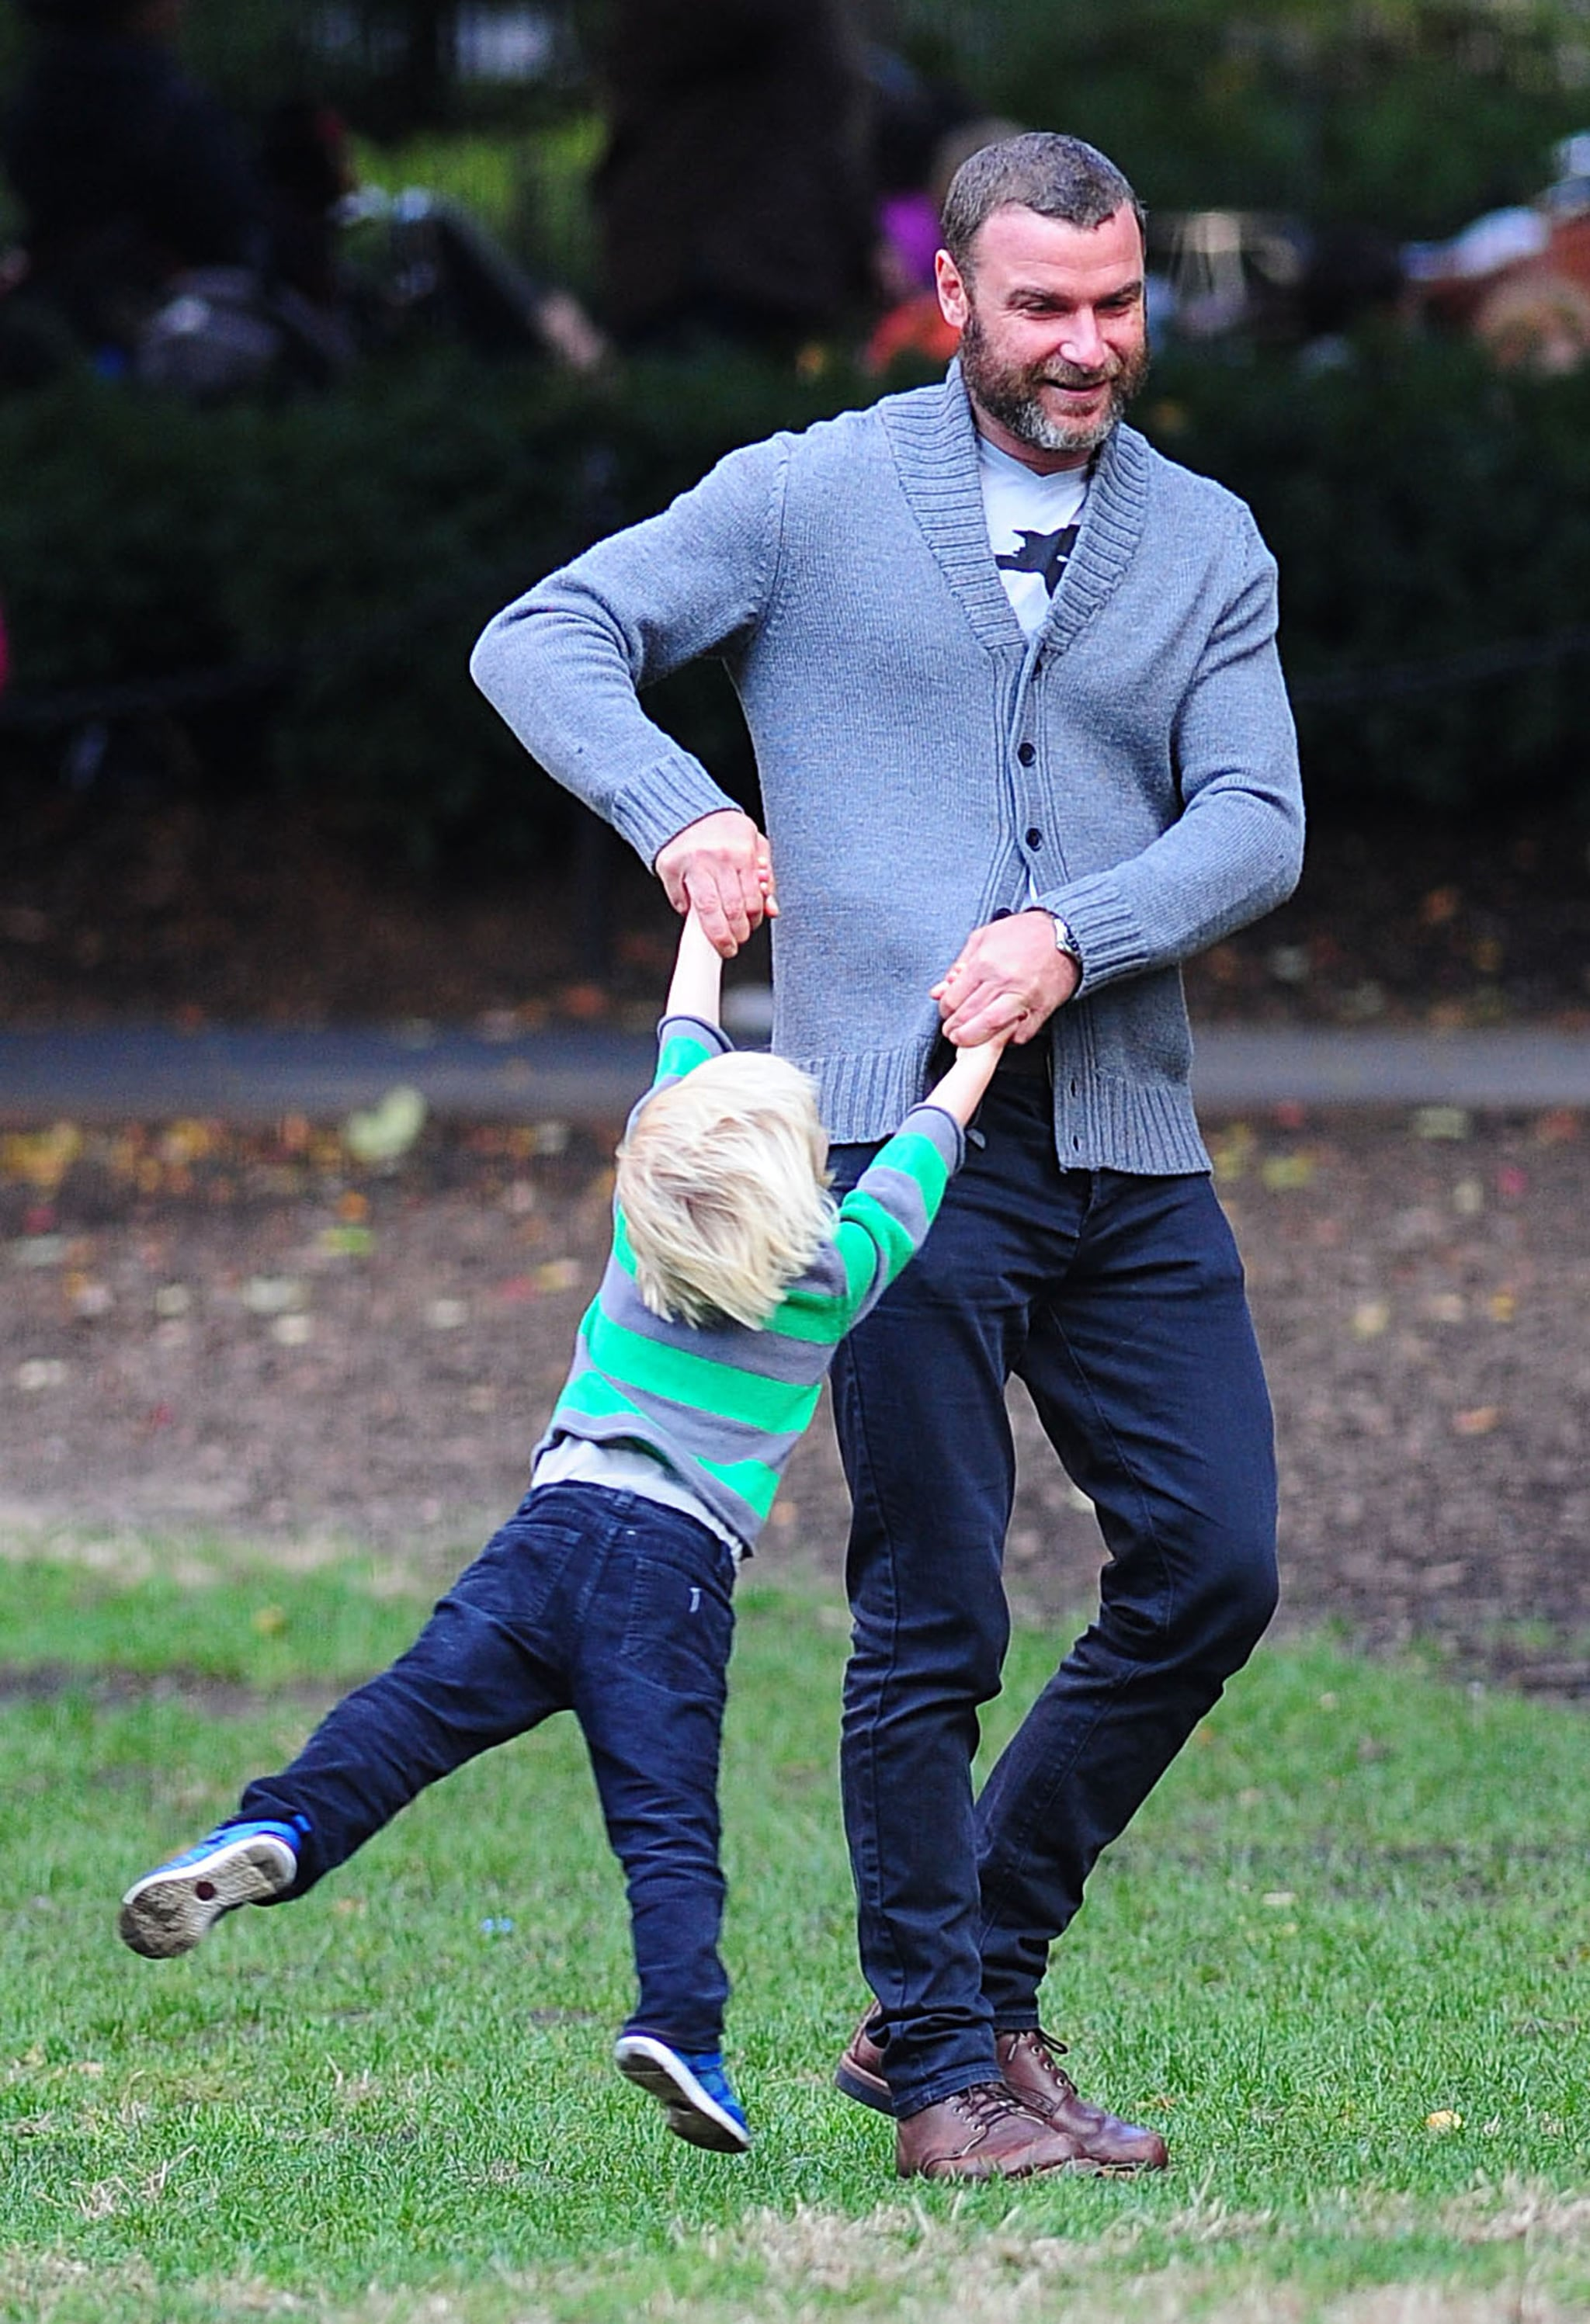 Liev Schreiber played with son Kai at the park in NYC.